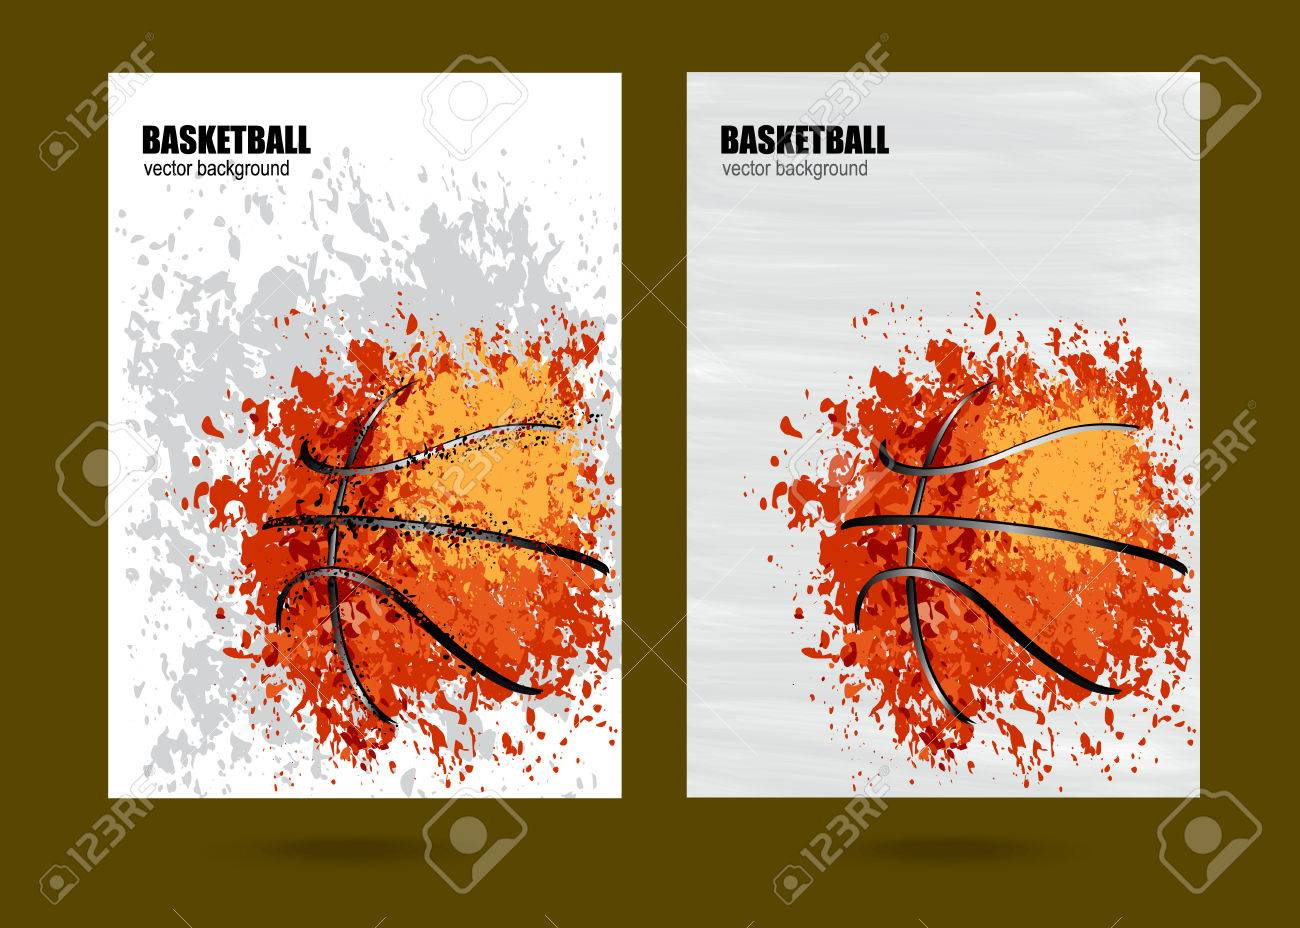 vector illustration basketball basketball sports posters design